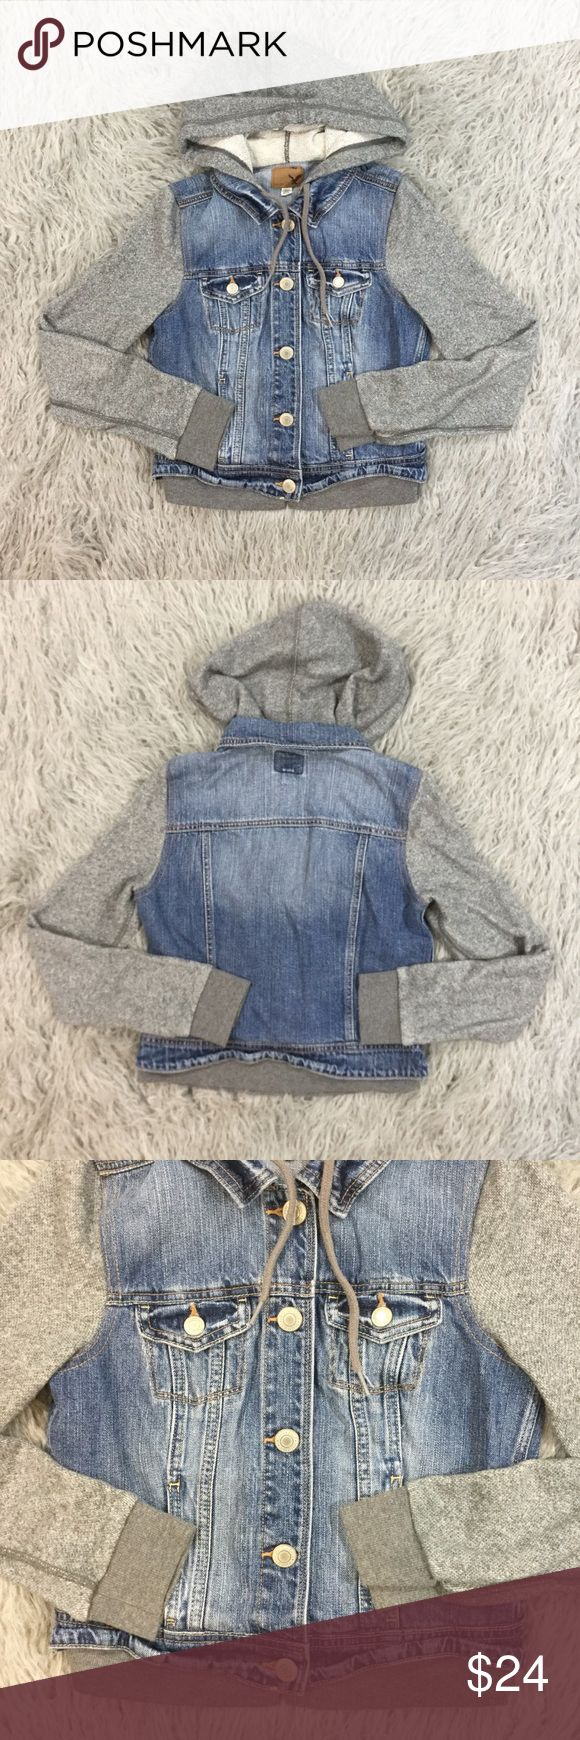 American Eagle Denim Sweatshirt Jacket In excellent used condition. Denim body with gray sweatshirt sleeves and hoodie. Size S, true to size. American Eagle Outfitters Jackets & Coats Jean Jackets